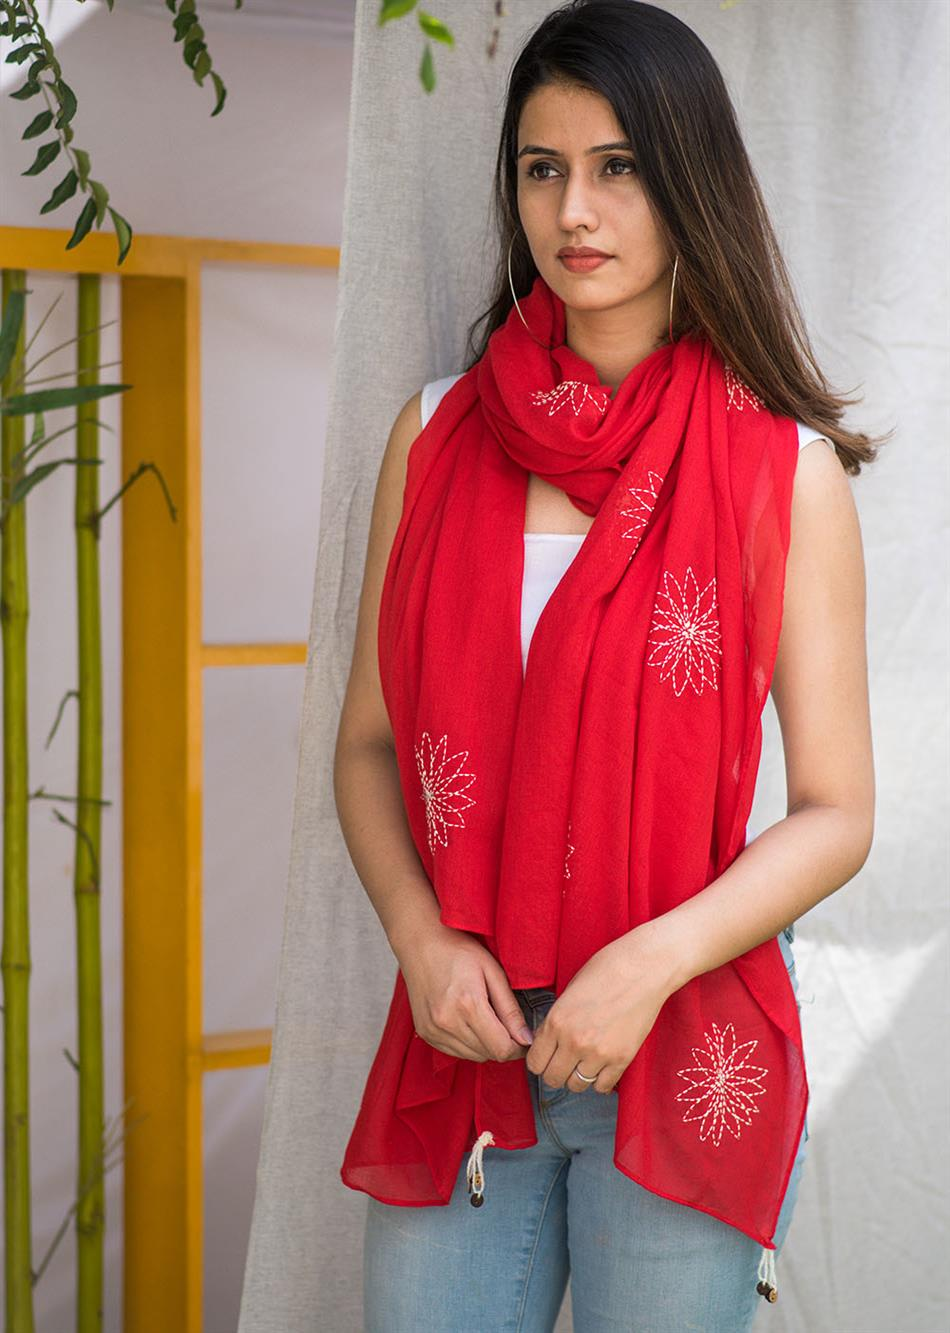 Balletic mood - Red (Hand embroidered scarf)